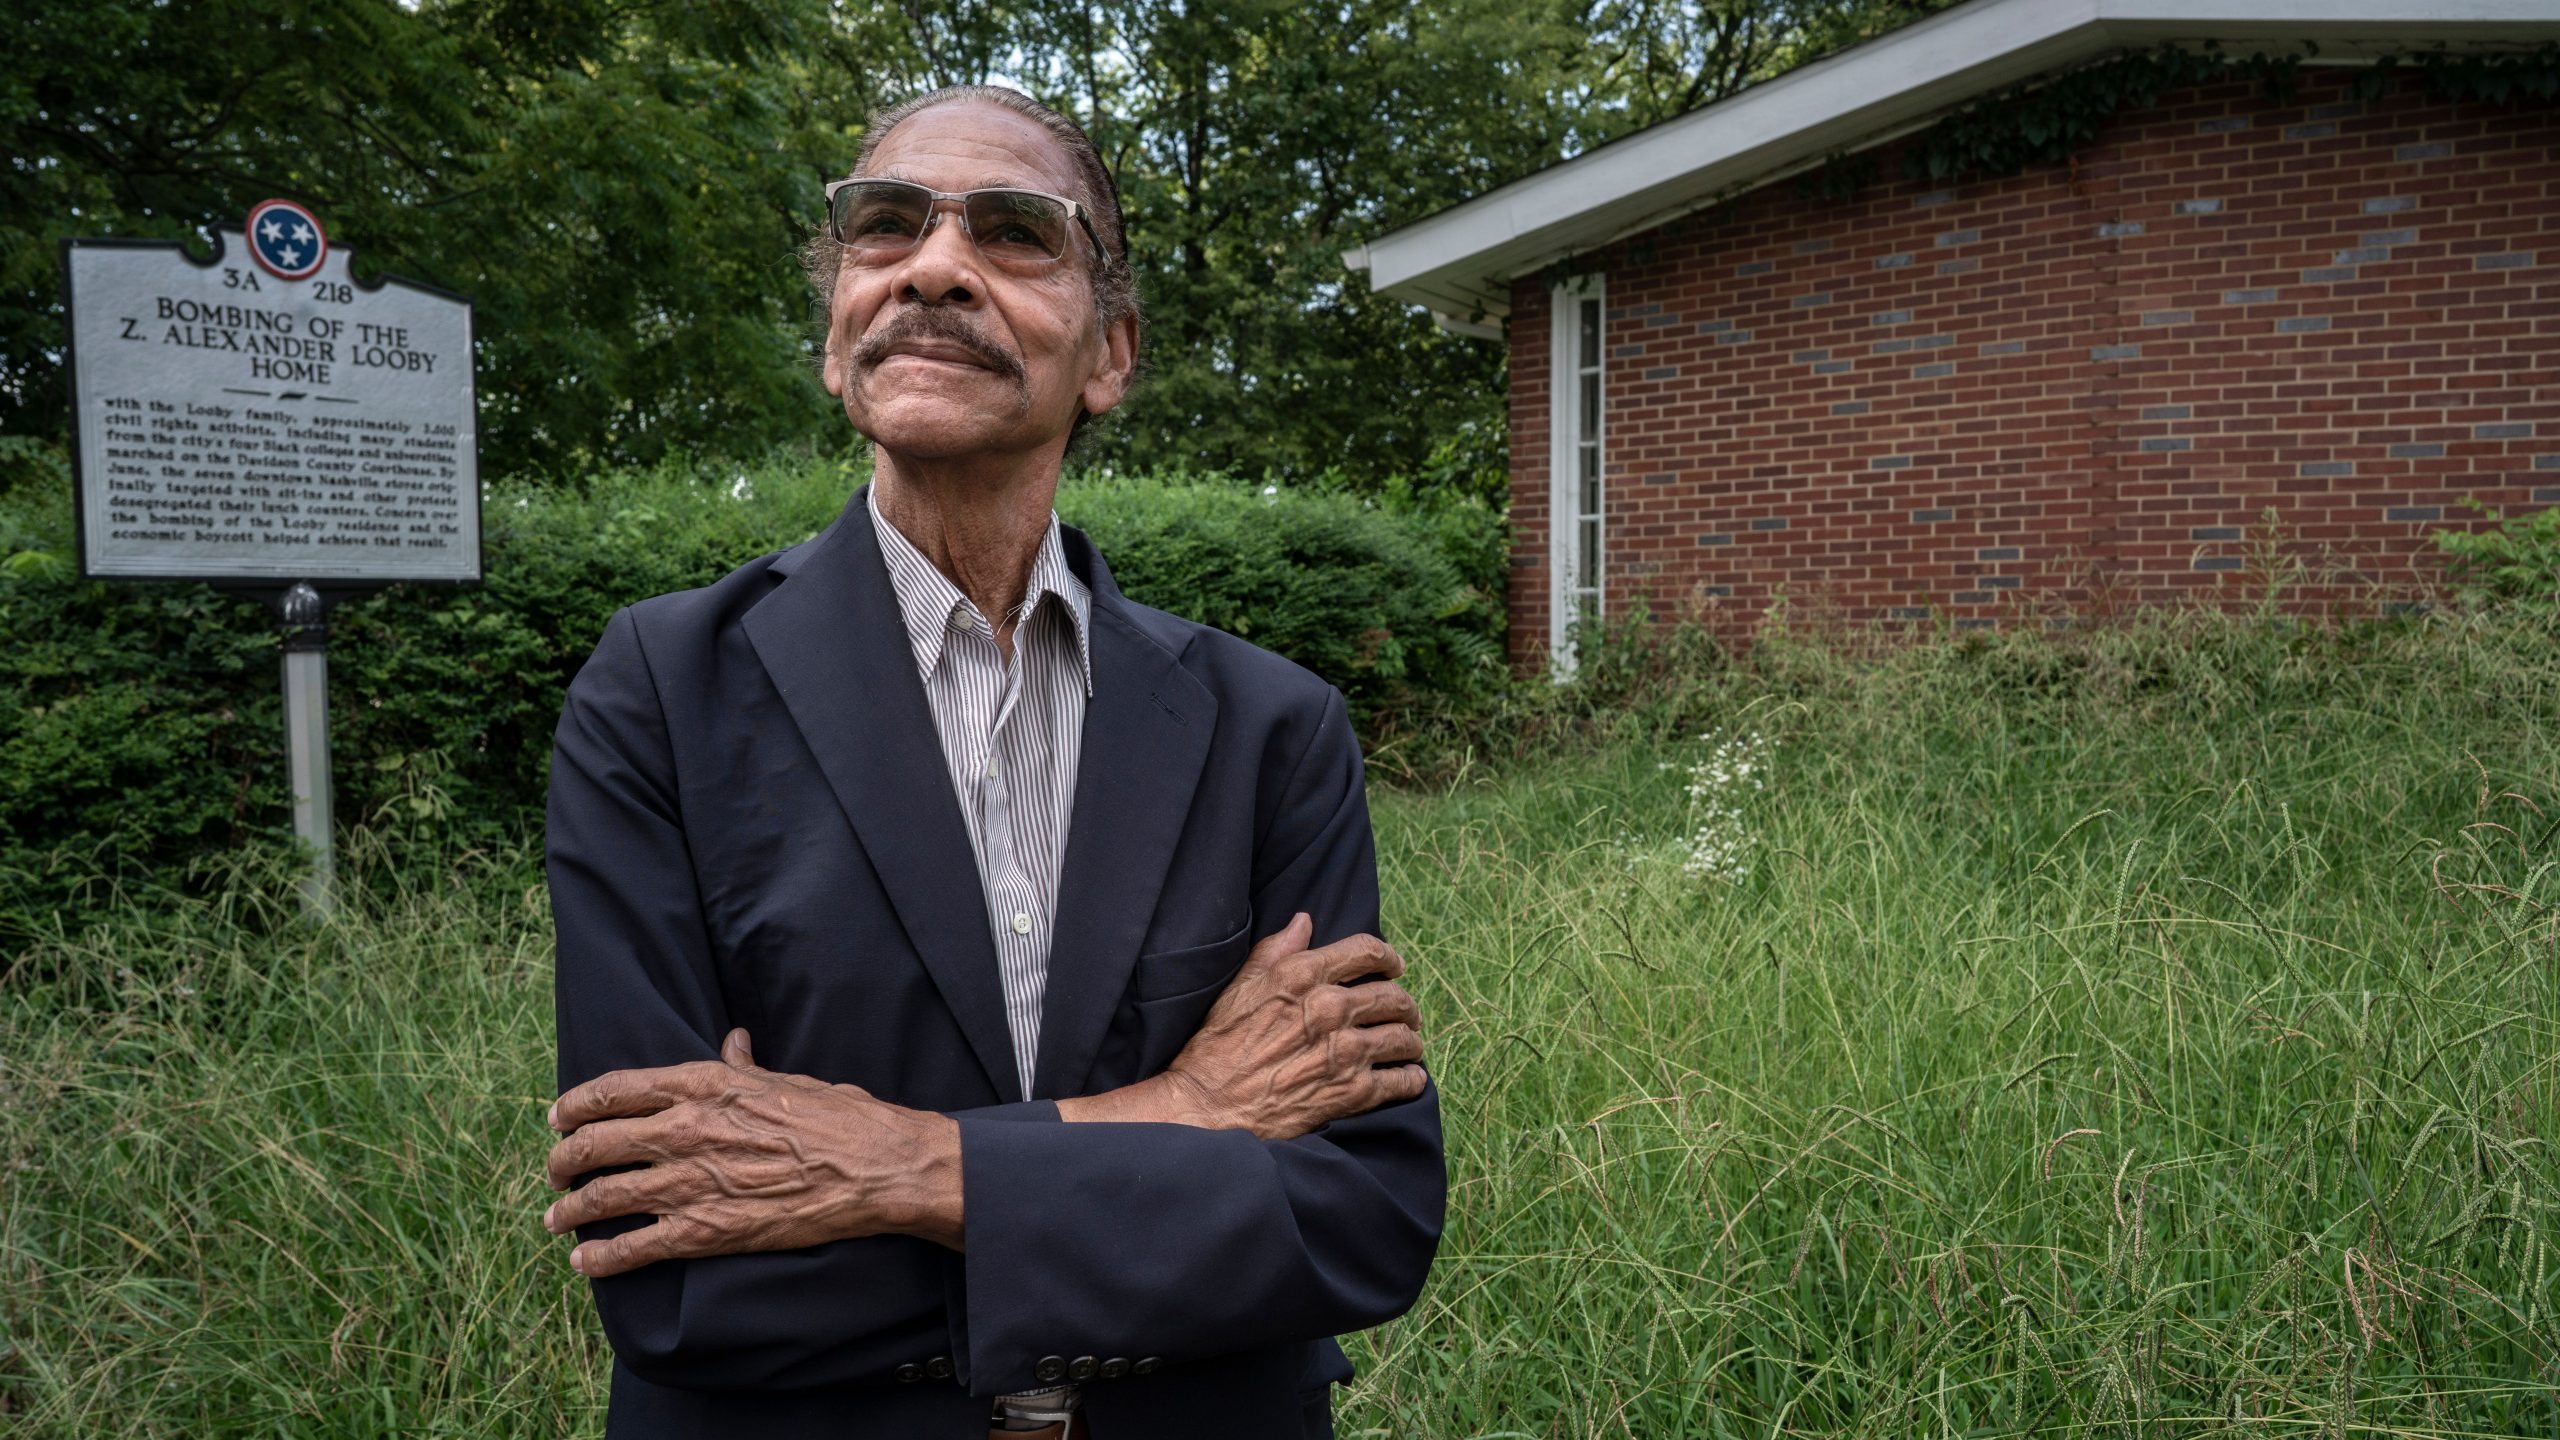 King Hollands poses outside the home owned by Nashville civil rights attorney Alexander Looby. Looby's home, near Fisk University and Meharry Medical College, was bombed in April 1960 by segregationists. (Photo: John Partipilo)